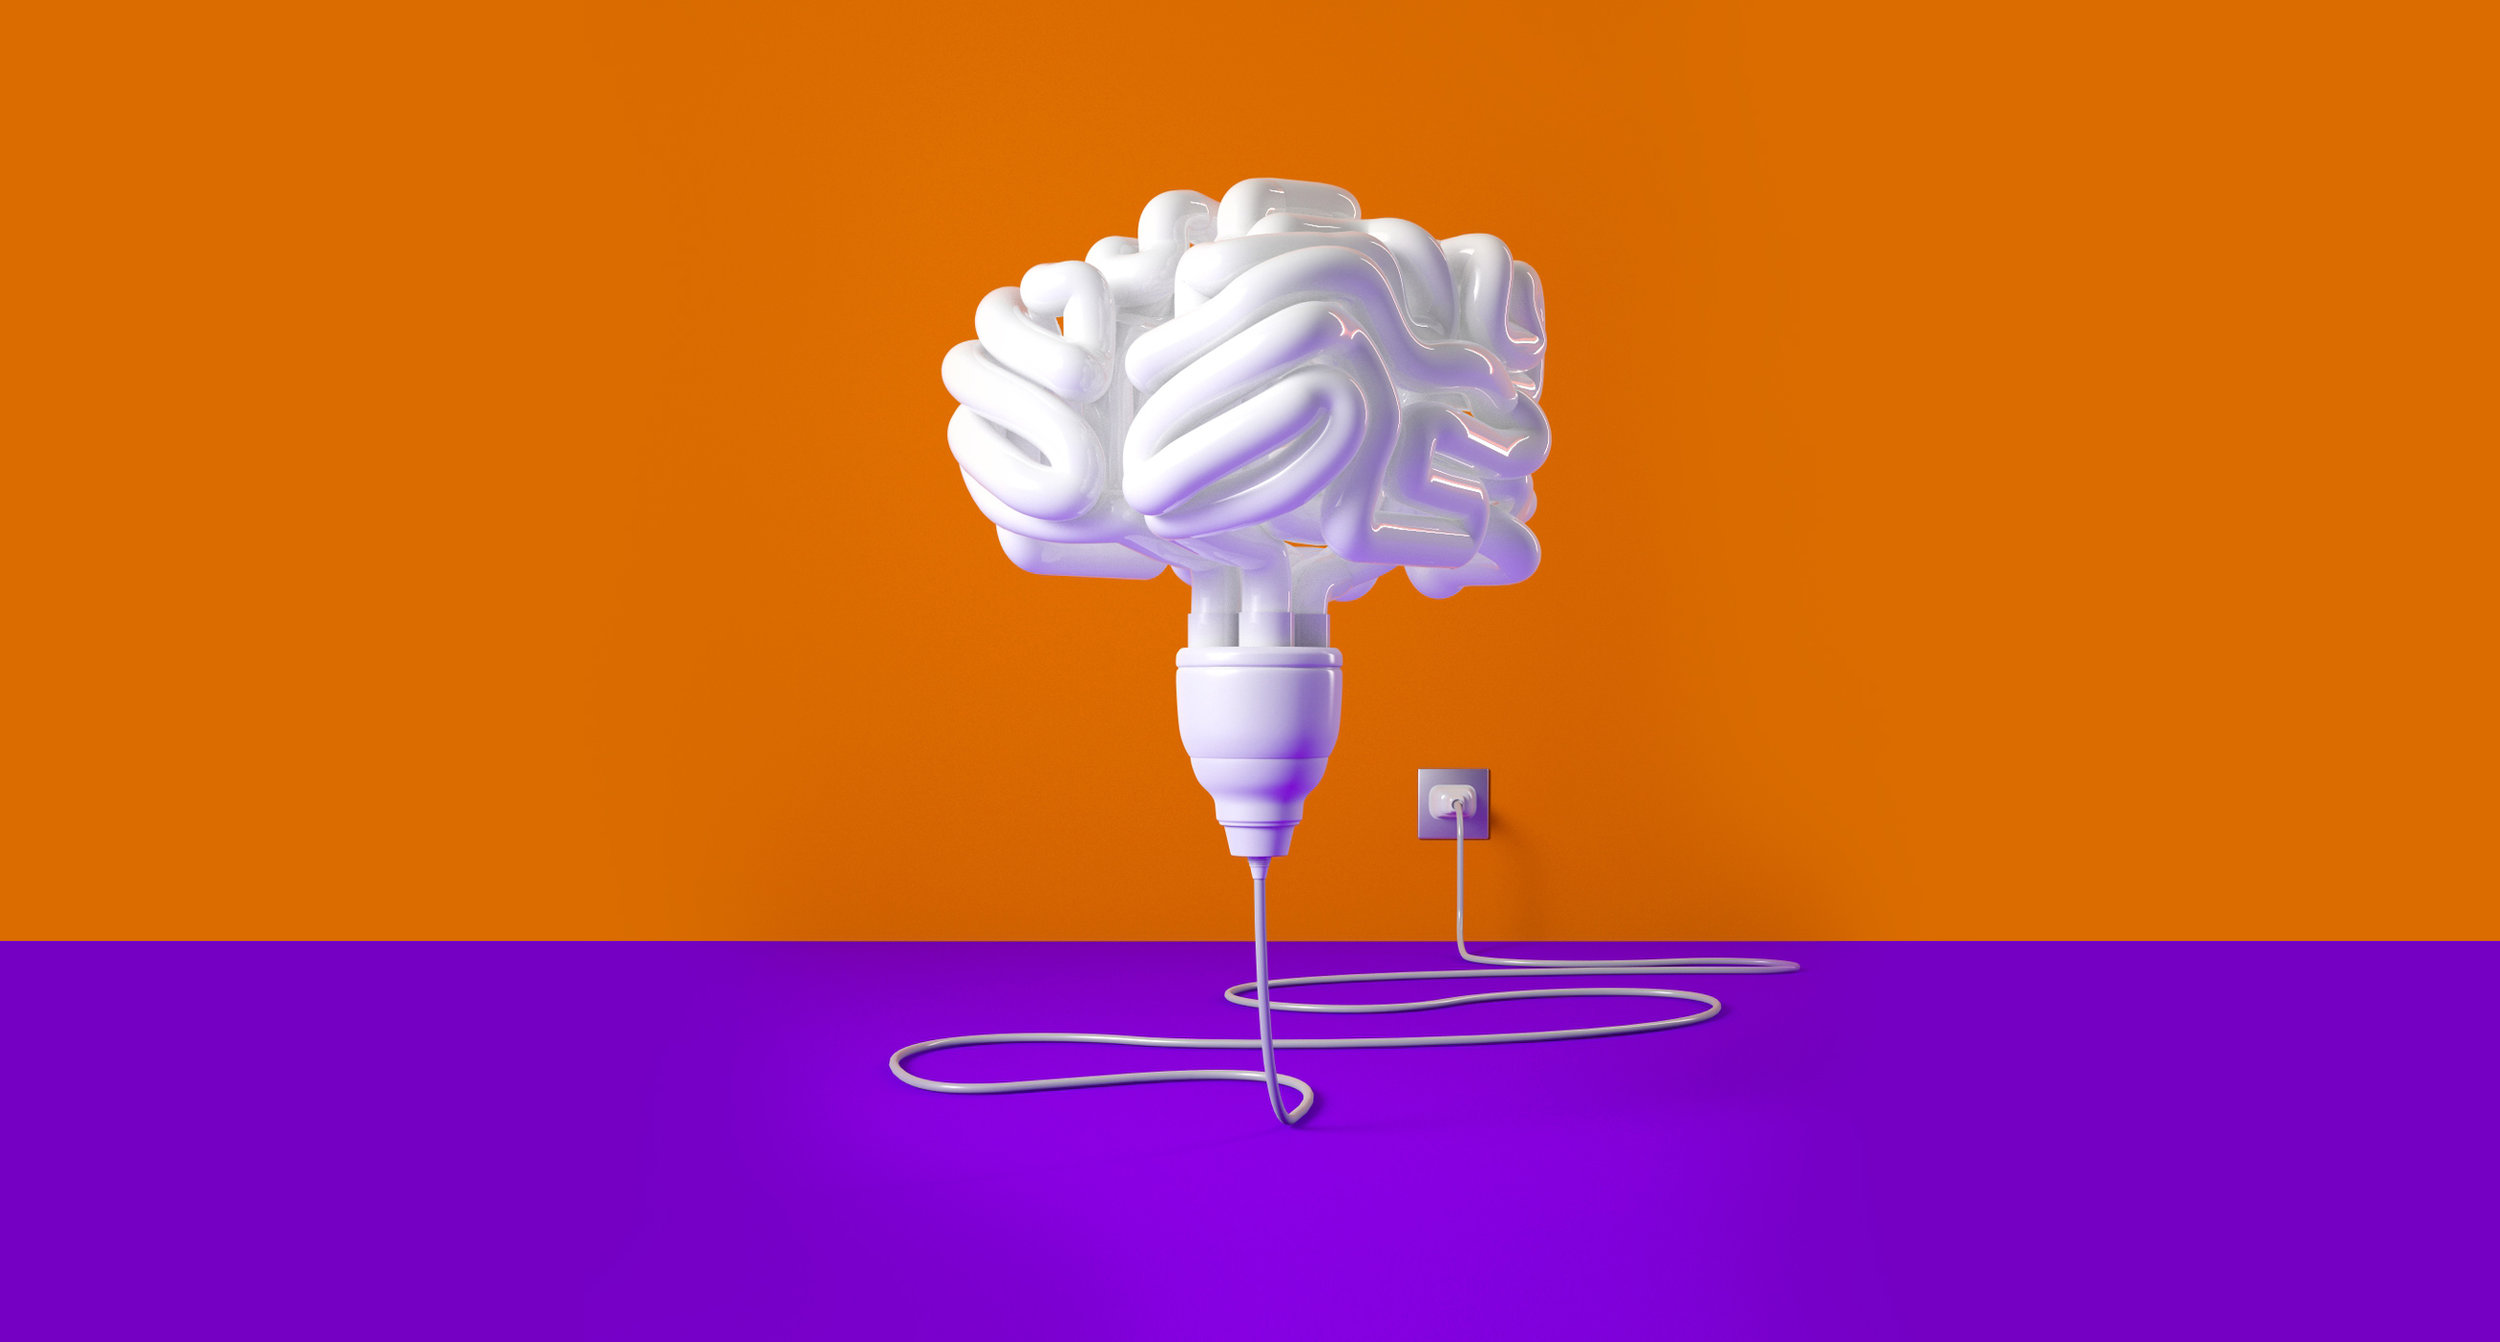 FortuneMagazine-ElectrifyYourMind-Illustration-3D-Ben-Fearnley.jpg